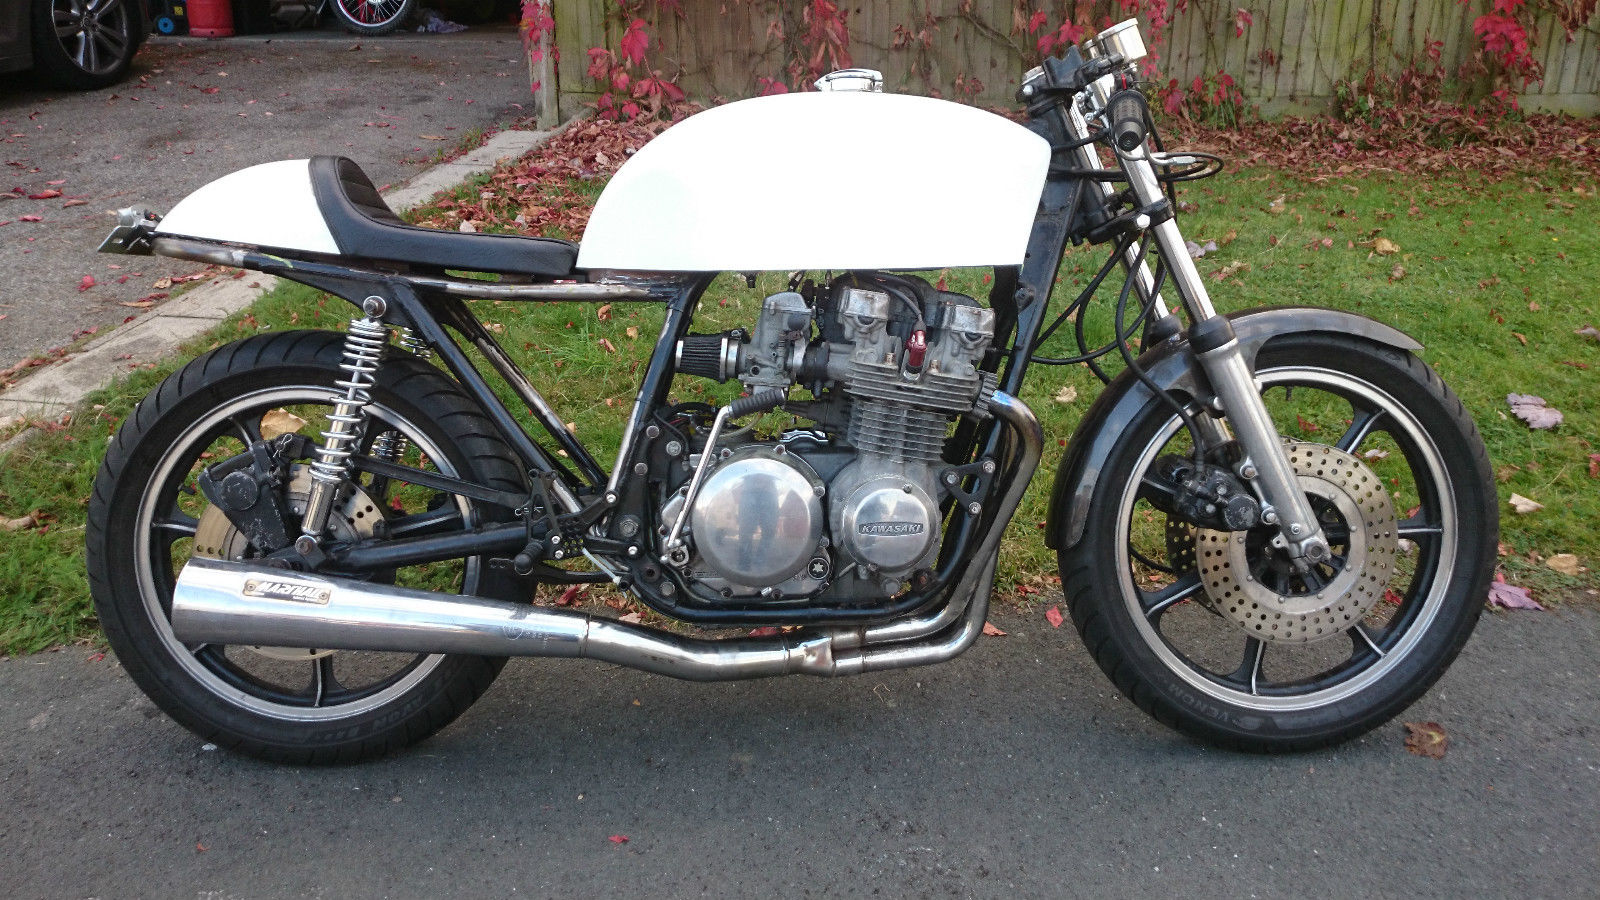 Kawasaki Z650 Cafe Racer Unfinished Project